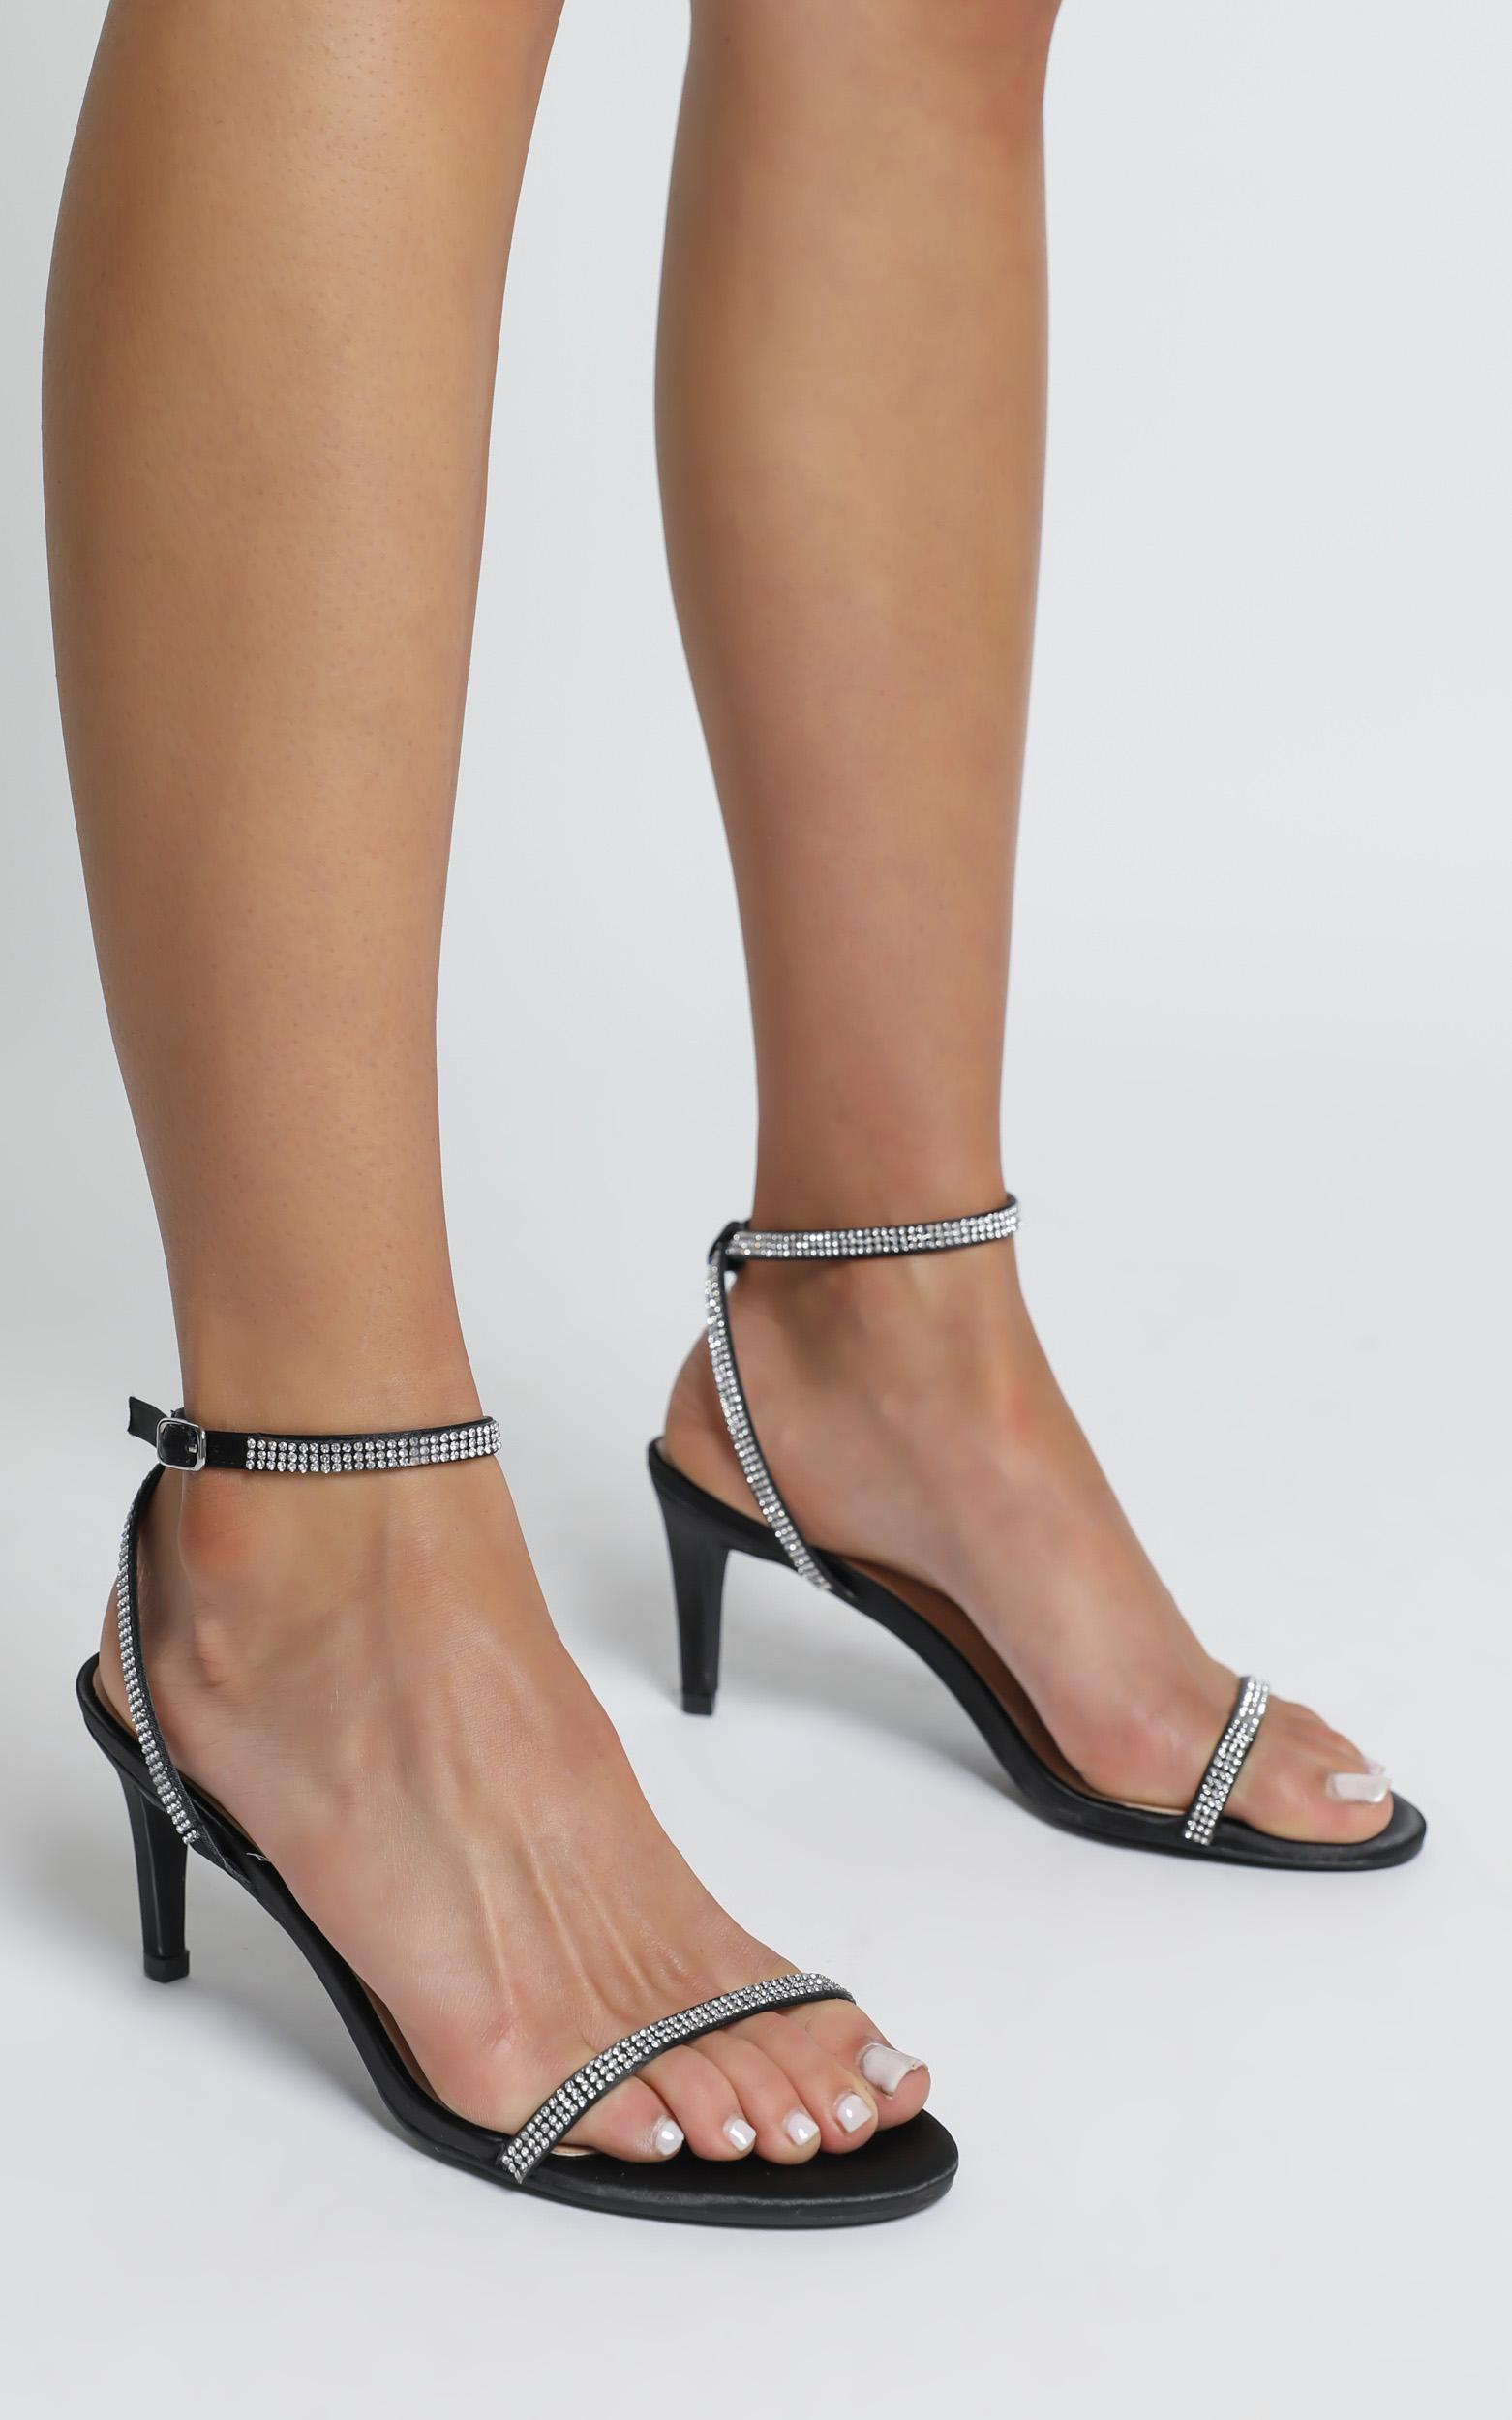 Therapy - Glimmer Heels in Black Suedette - 5, Black, hi-res image number null